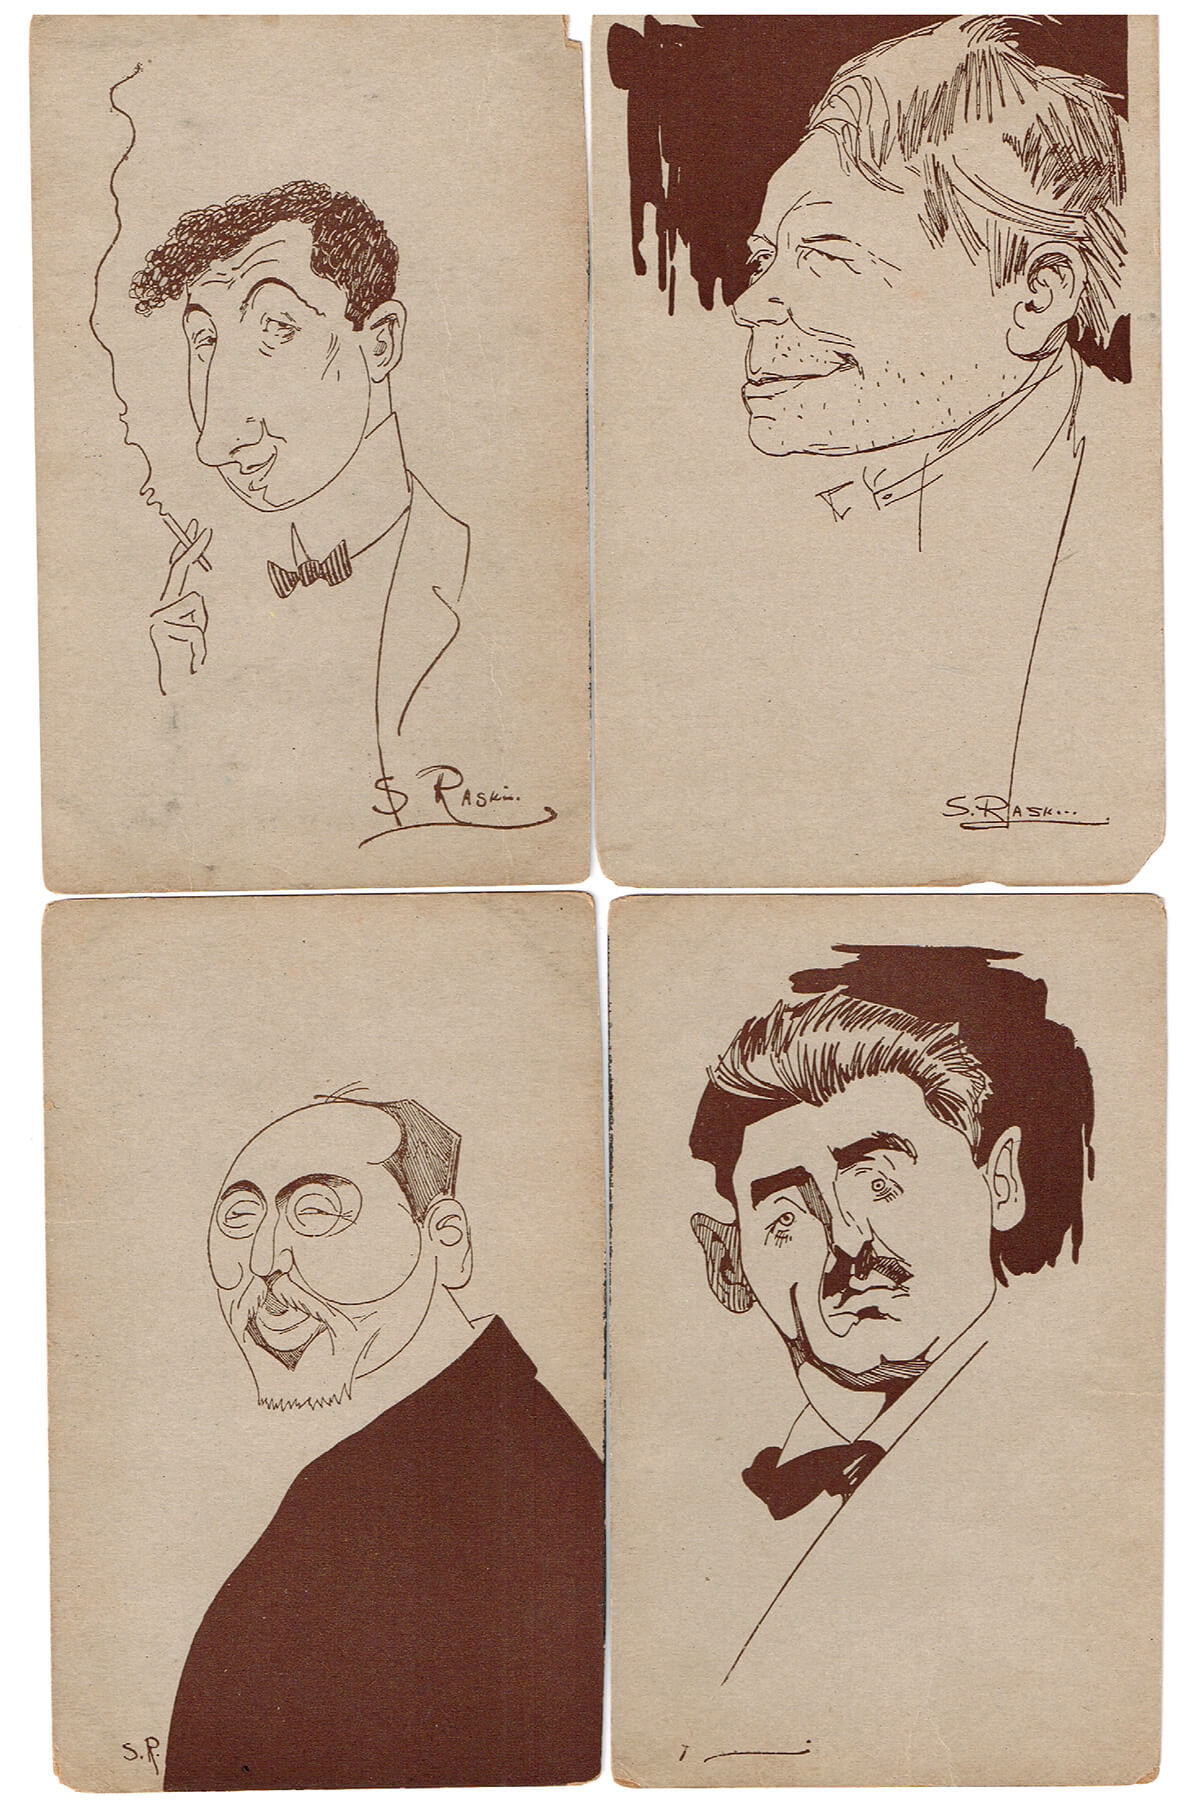 186. A Group of 11 Postcards of Prominent Jews Drawn by Saul Raskin